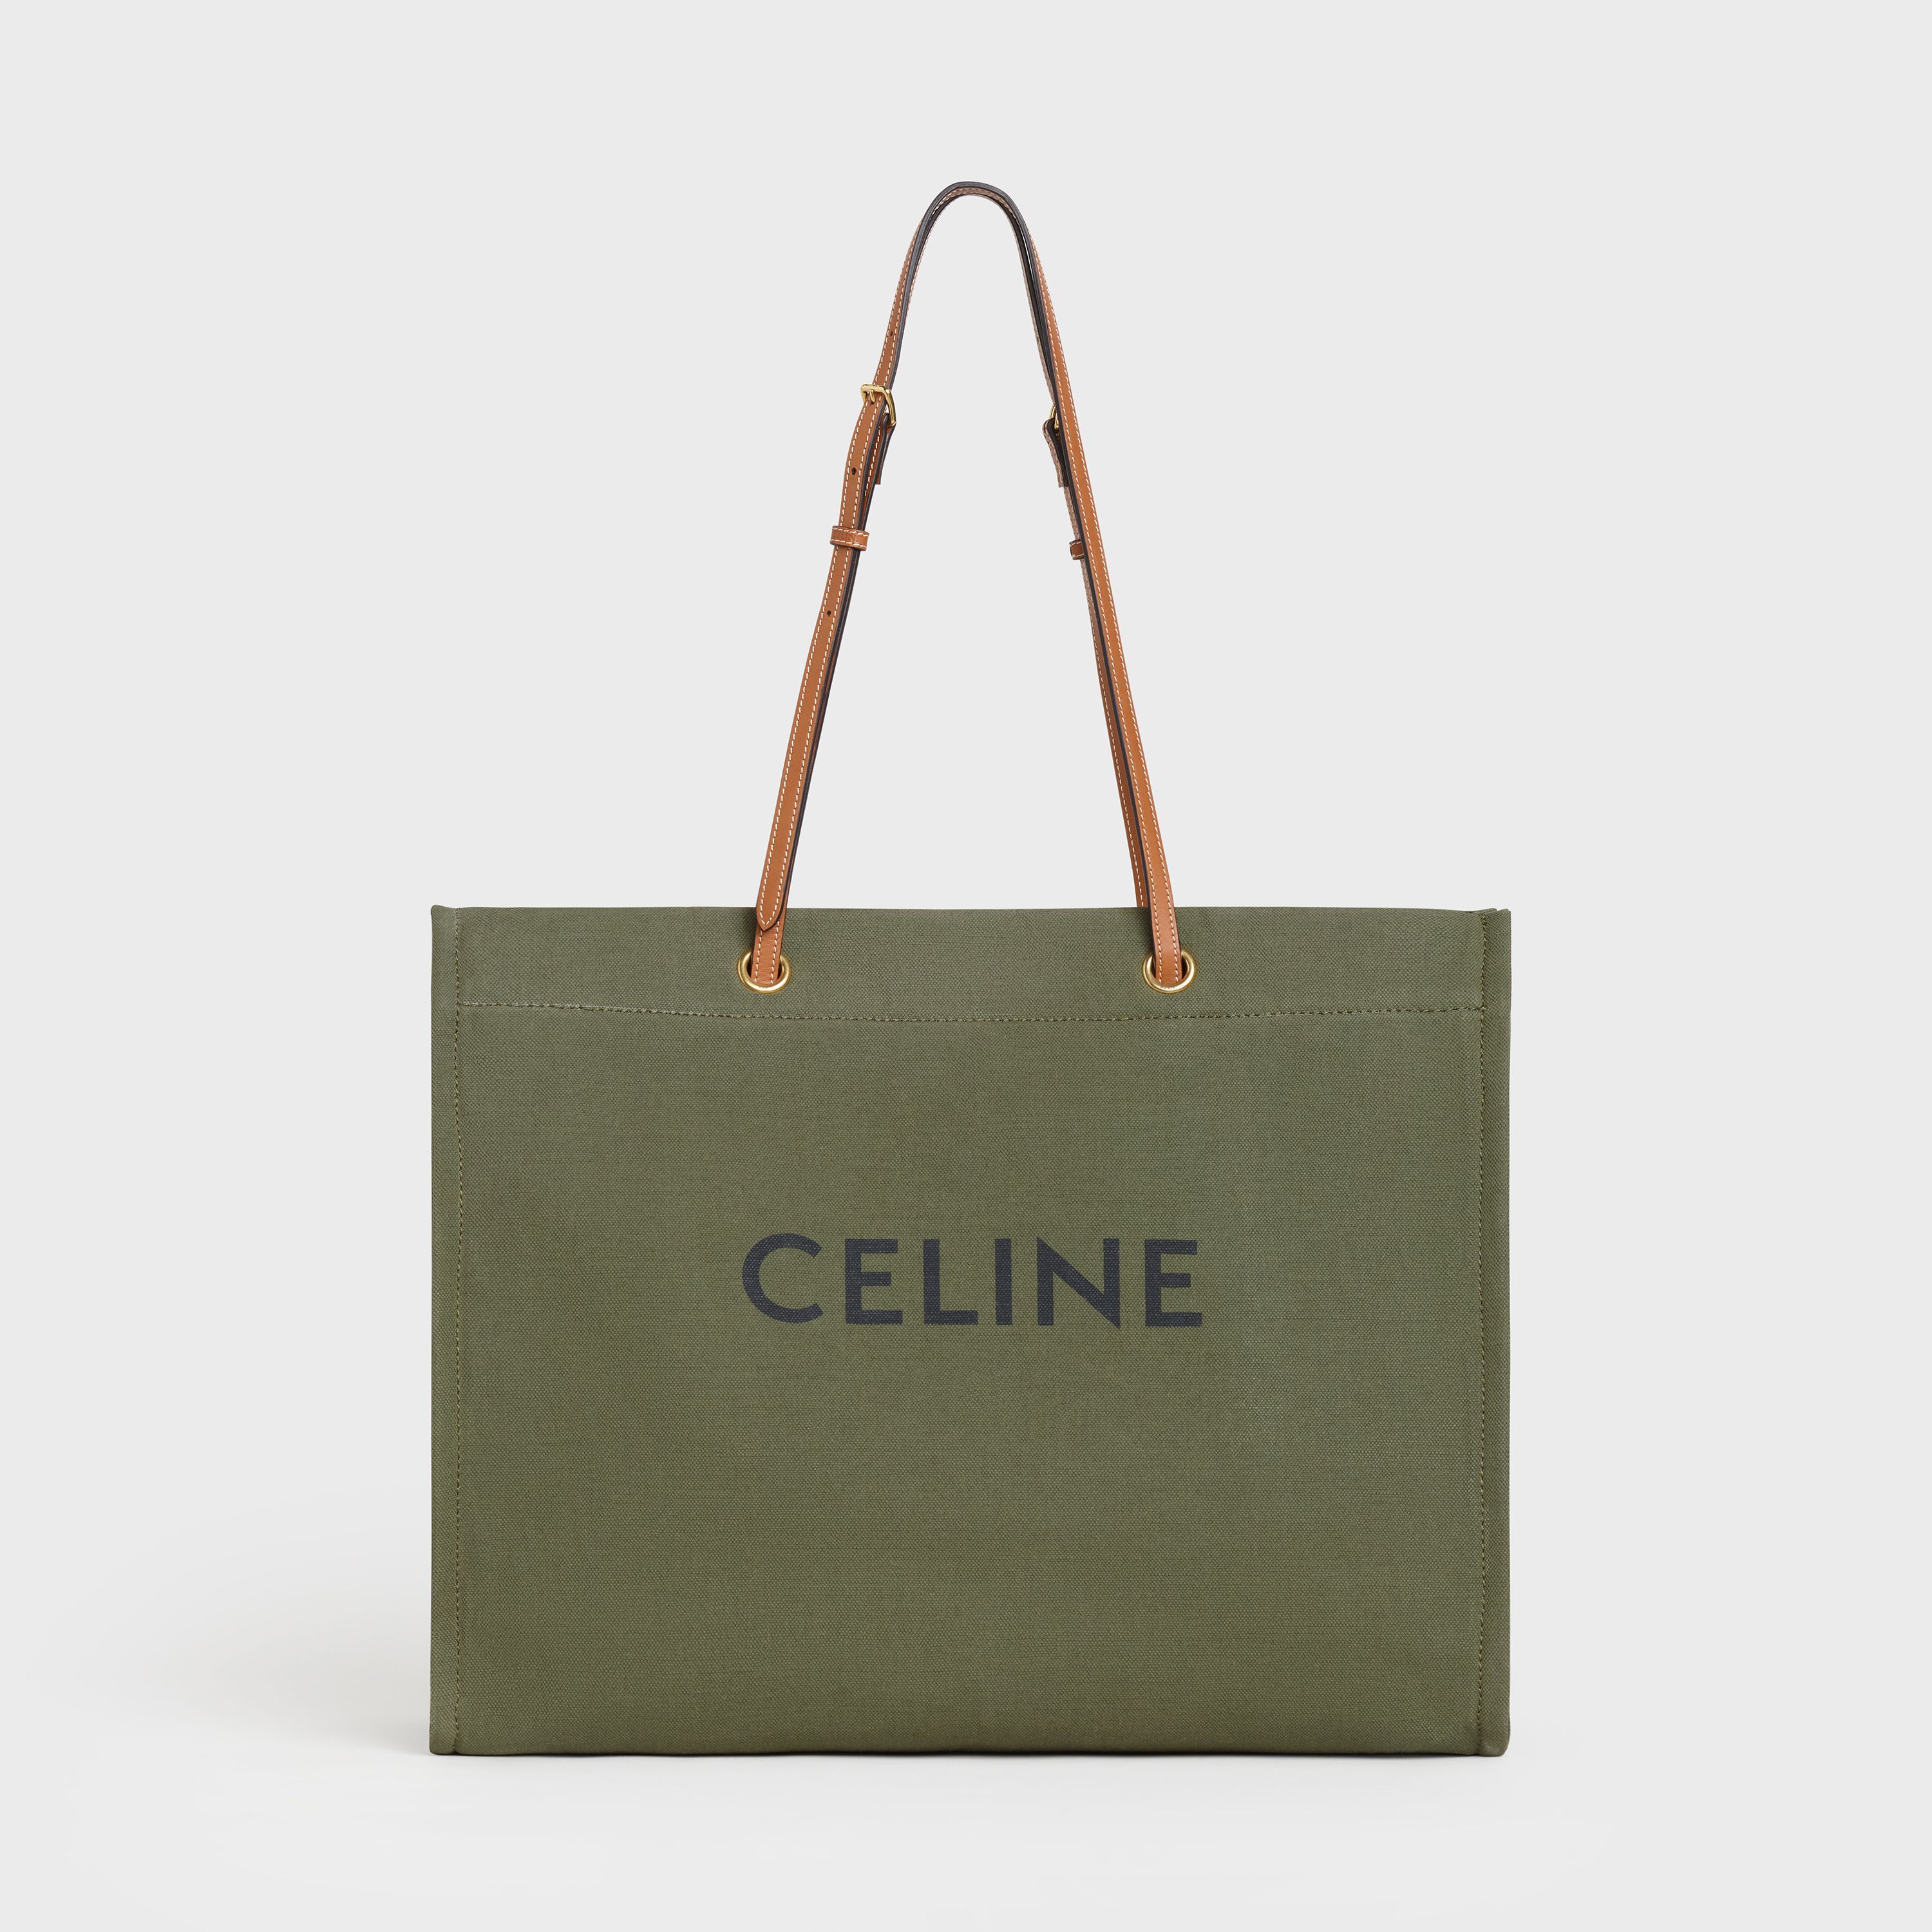 Squared Cabas Celine in Textile with Celine Print and Calfskin